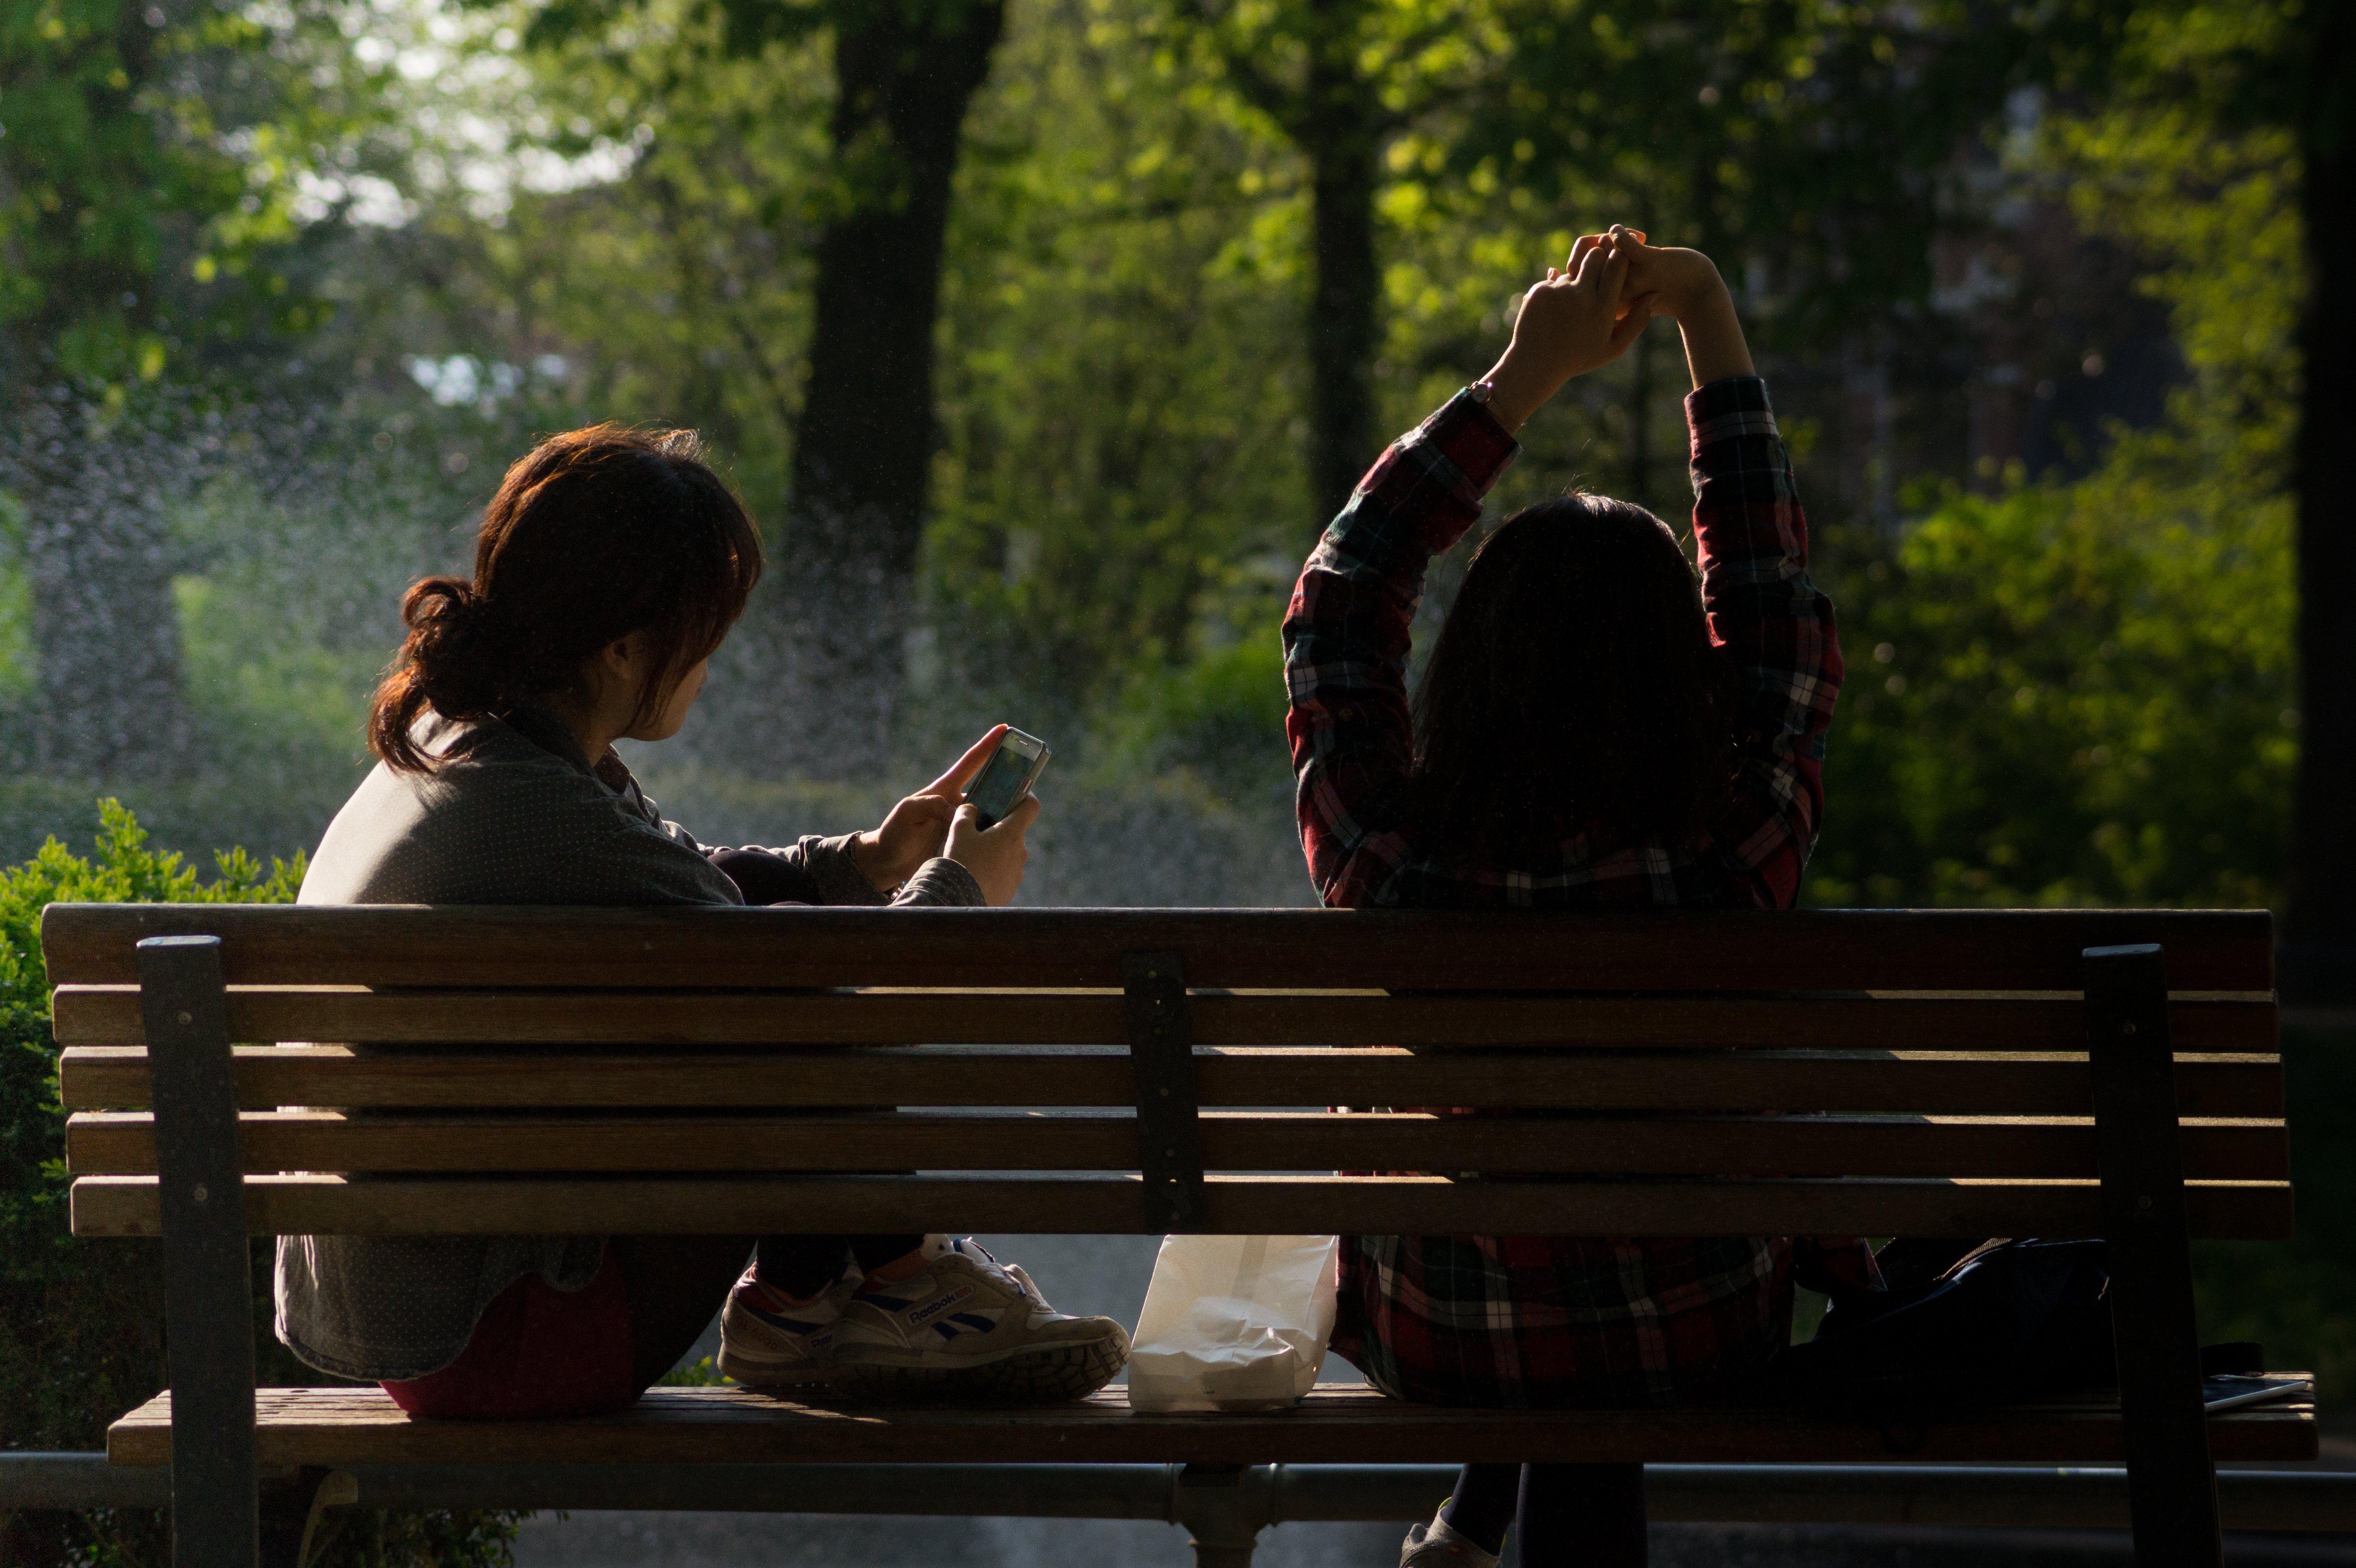 Woman sitting on a bench in a park using a smartphone